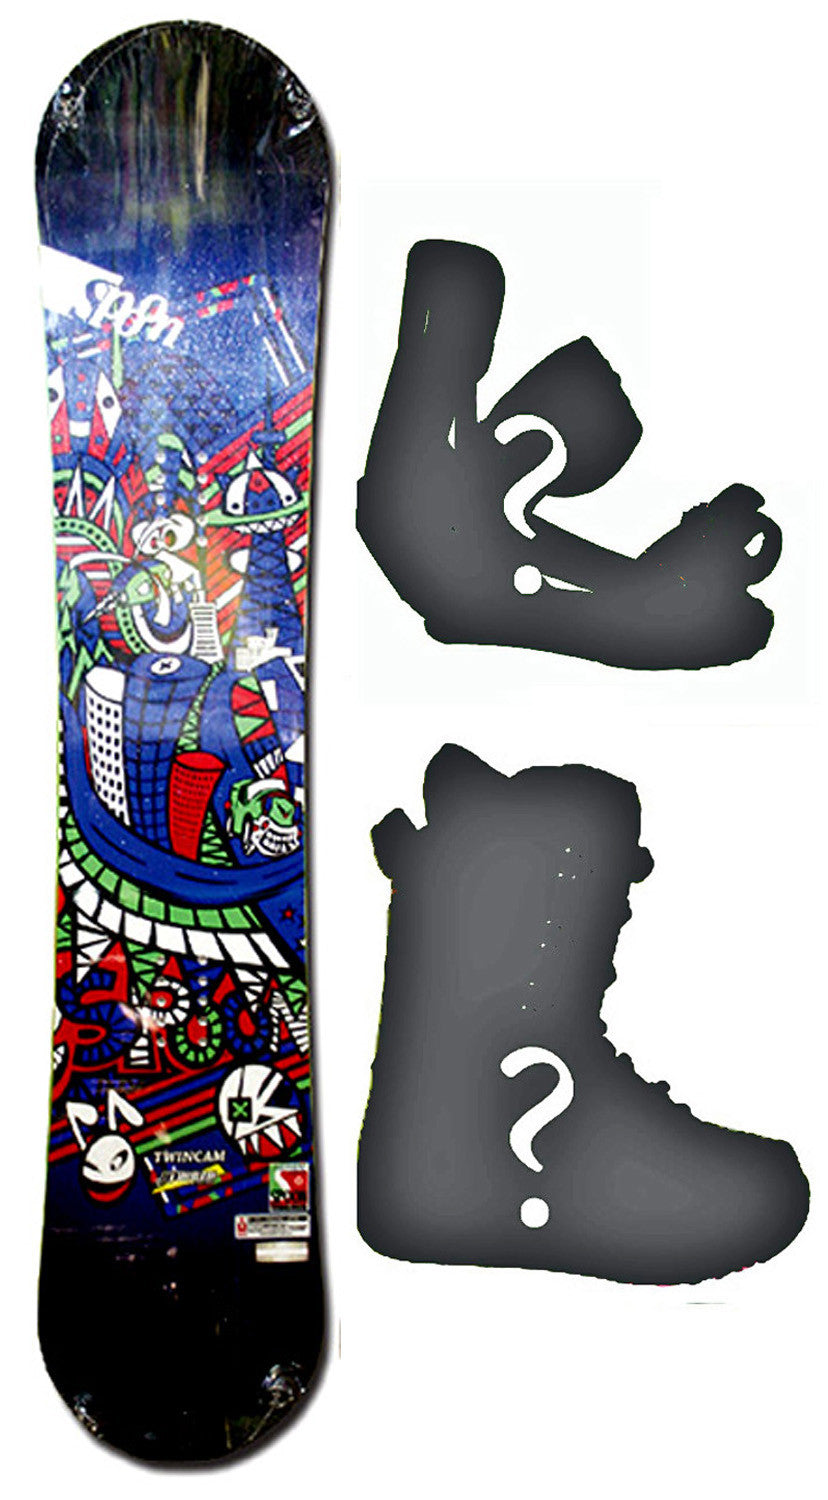 154cm  Spoon Twin Cam Blue Rocker Snowboard, Build a Package with Boots and Bindings